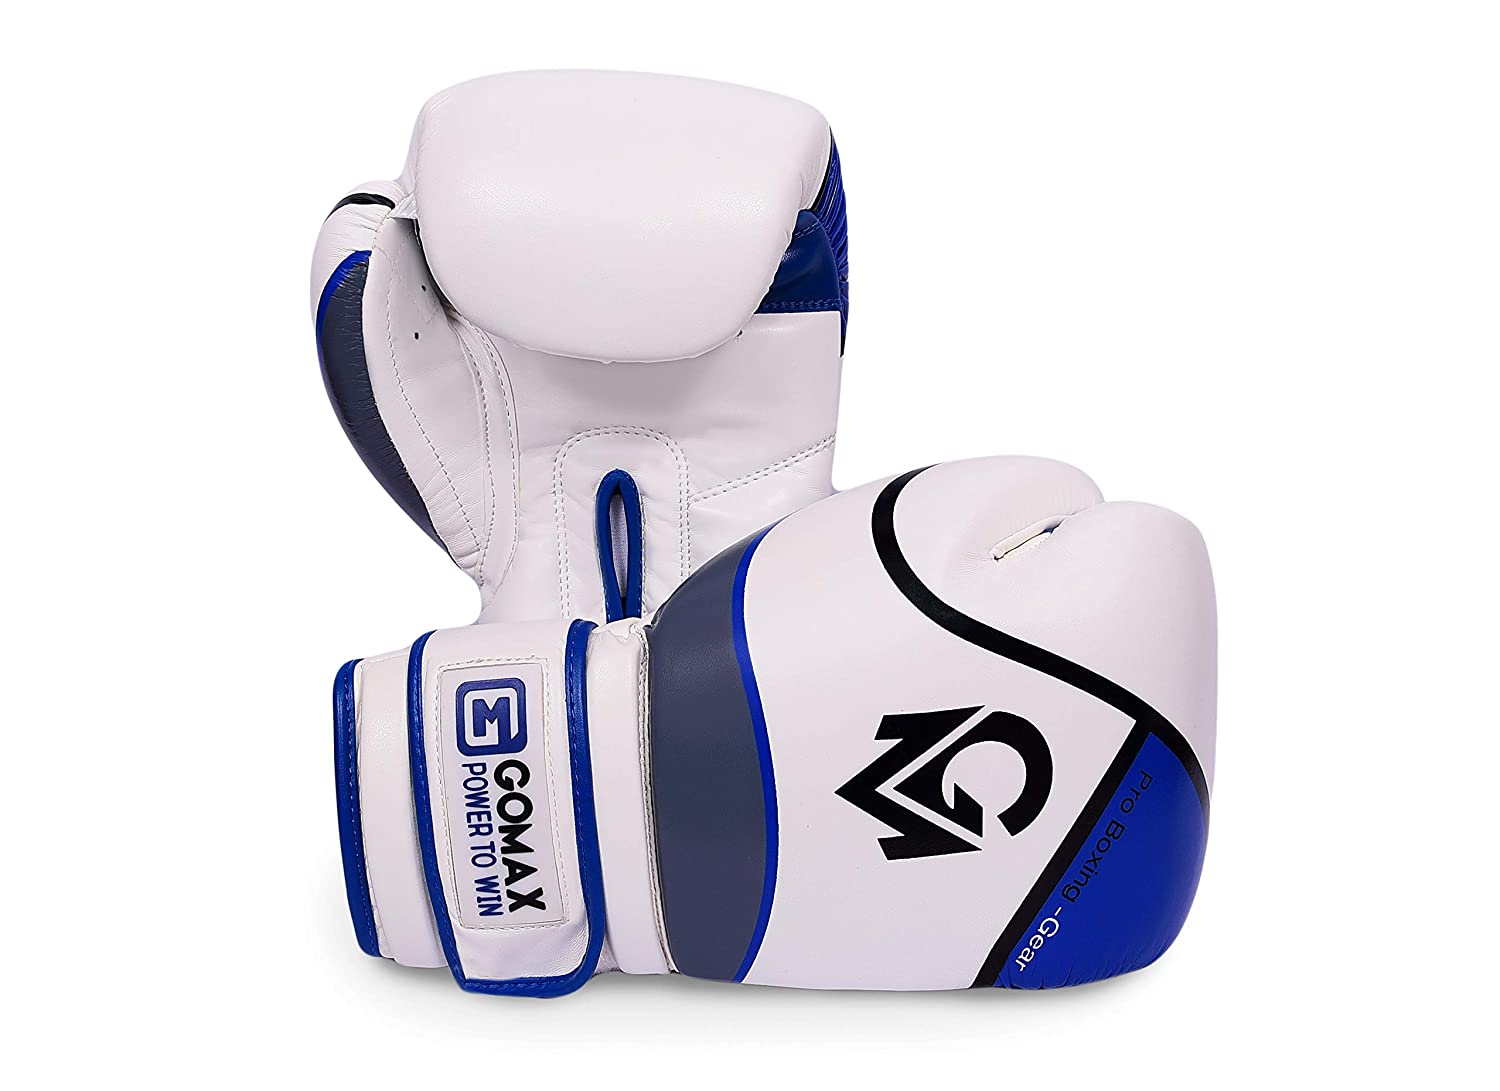 14 16 oz Boxing Gloves for Training Punching Sparring Punching Bag Boxing Bag Gloves Punch Bag Mitts Muay Thai Kickboxing MMA Martial Arts Workout Gloves GoMax Leather Boxing Gloves 6 12 10 8